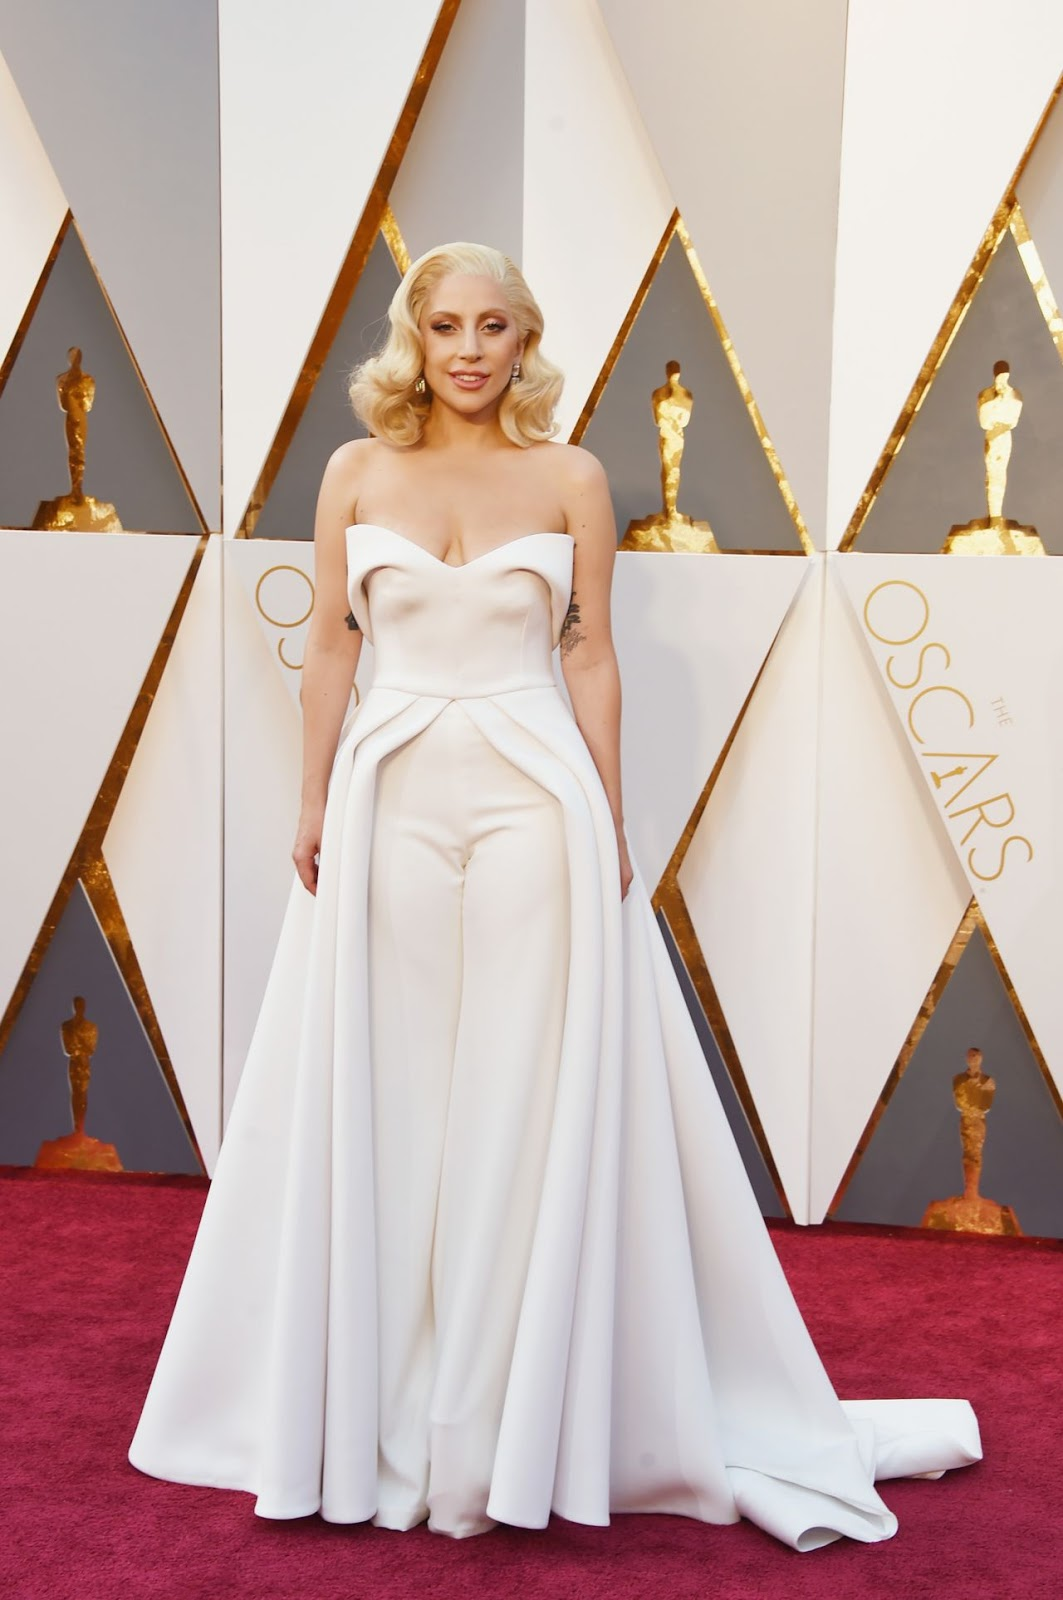 Lady Gaga flaunts $8 million diamonds at the Oscars 2016